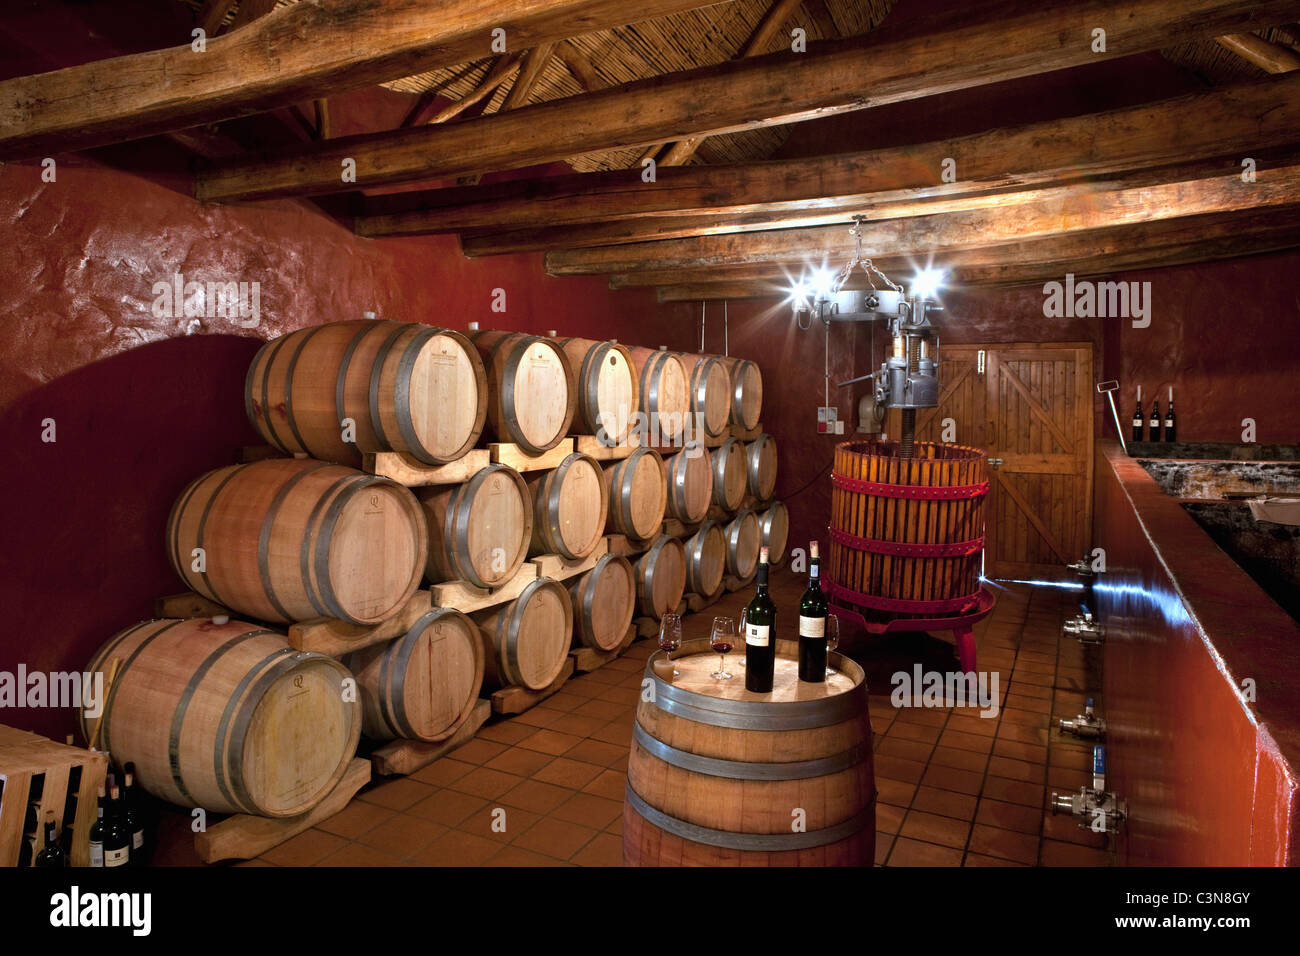 South Africa, Western Cape, Robertson Wine Valley. Guesthouse, restaurant and winery Fraai Uitzicht. Wine cellar. Stock Photo